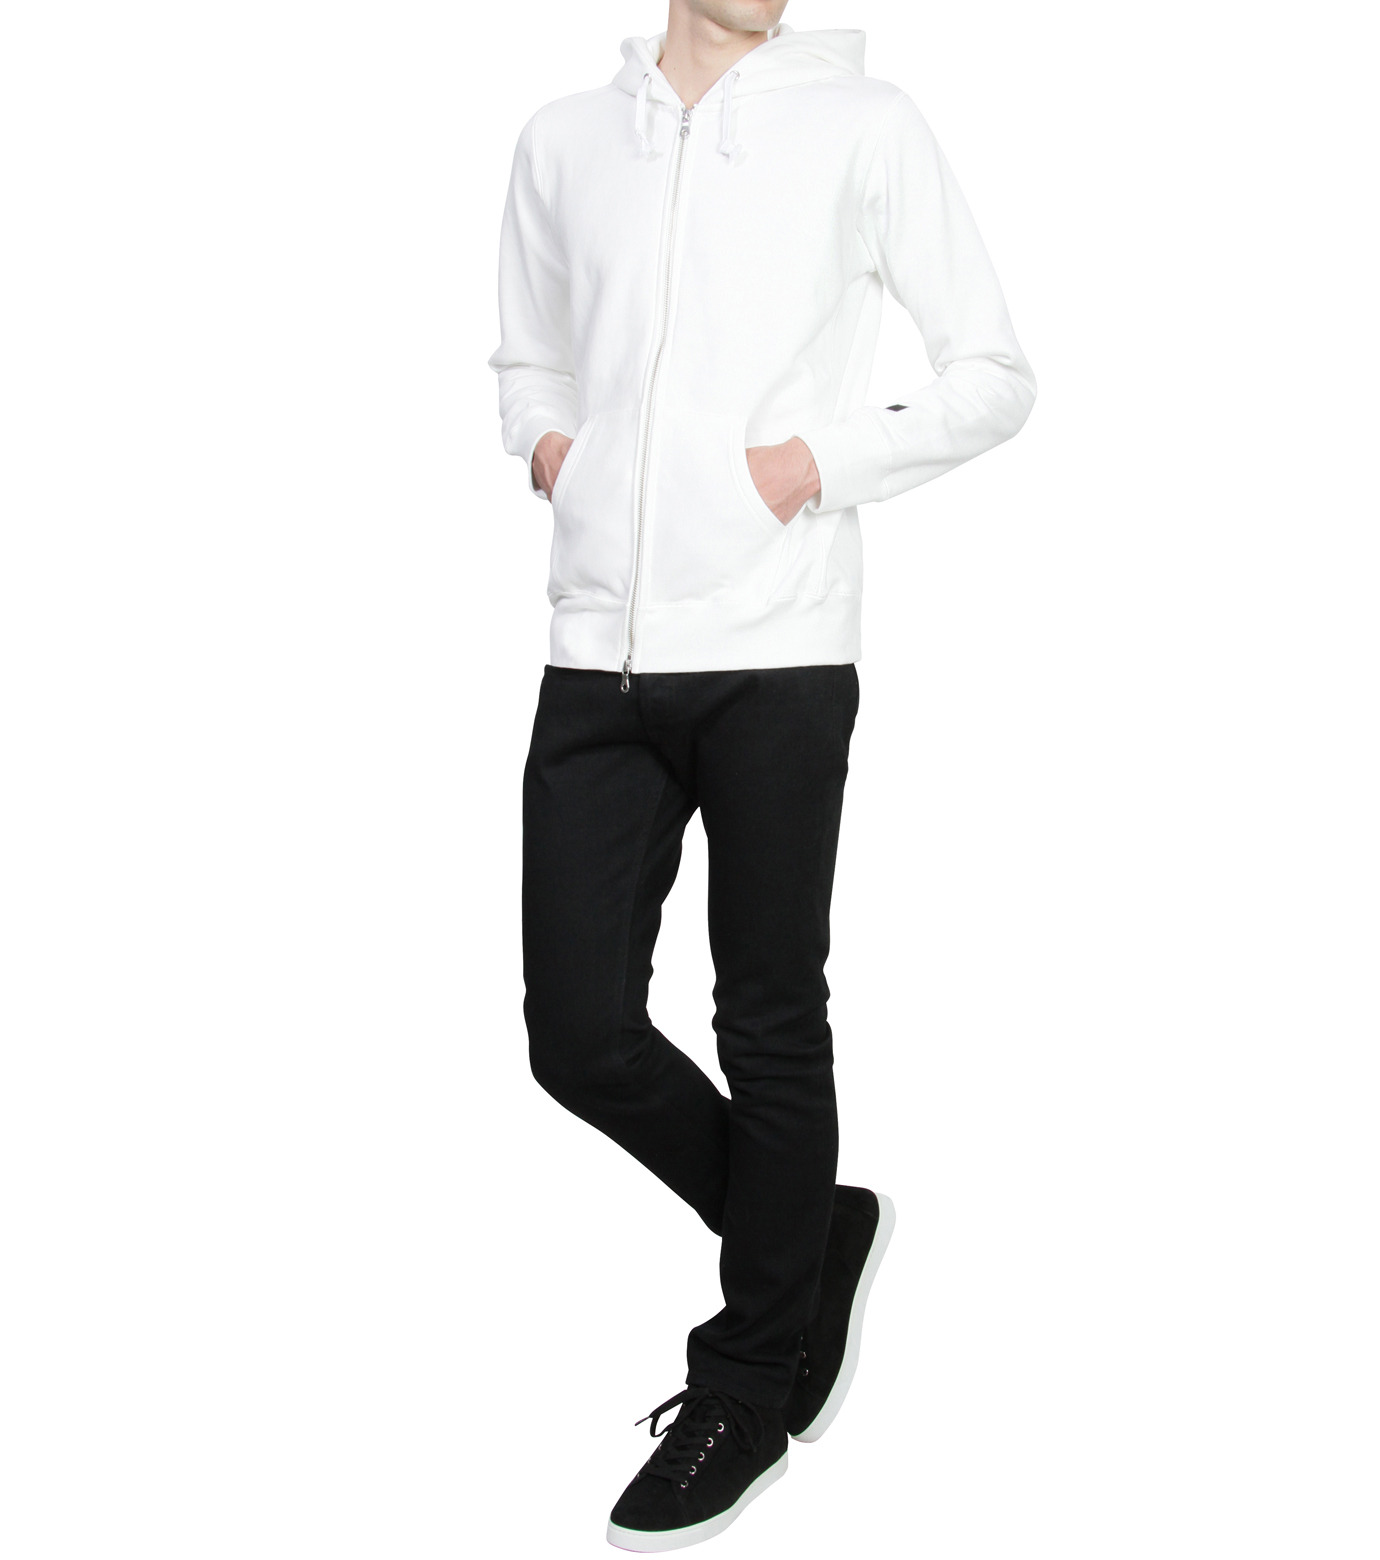 HL HEDDIE LOVU(エイチエル・エディールーヴ)のHL Hooded ZIP-WHITE(カットソー/cut and sewn)-16A92007-4 拡大詳細画像3